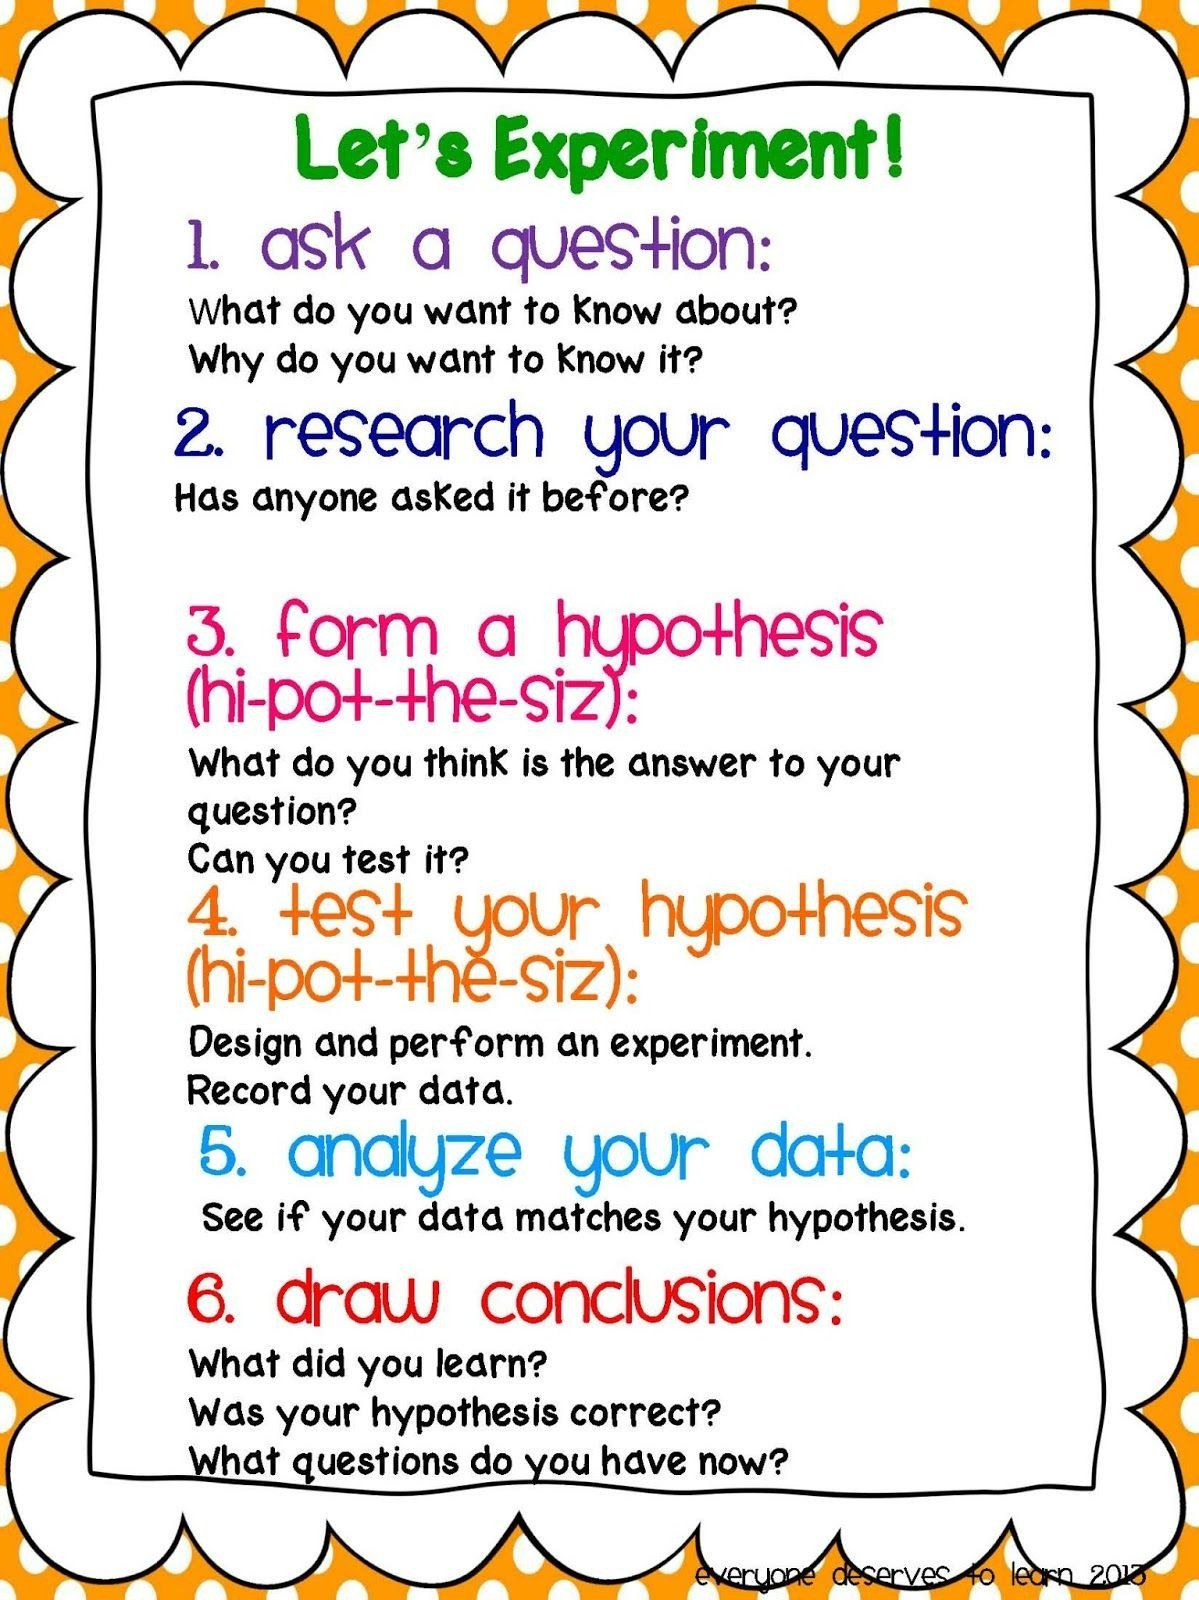 Scientific Method 3rd Grade Worksheet Scientific Method For Kids Scientific Method Science Fair School Science Experiments